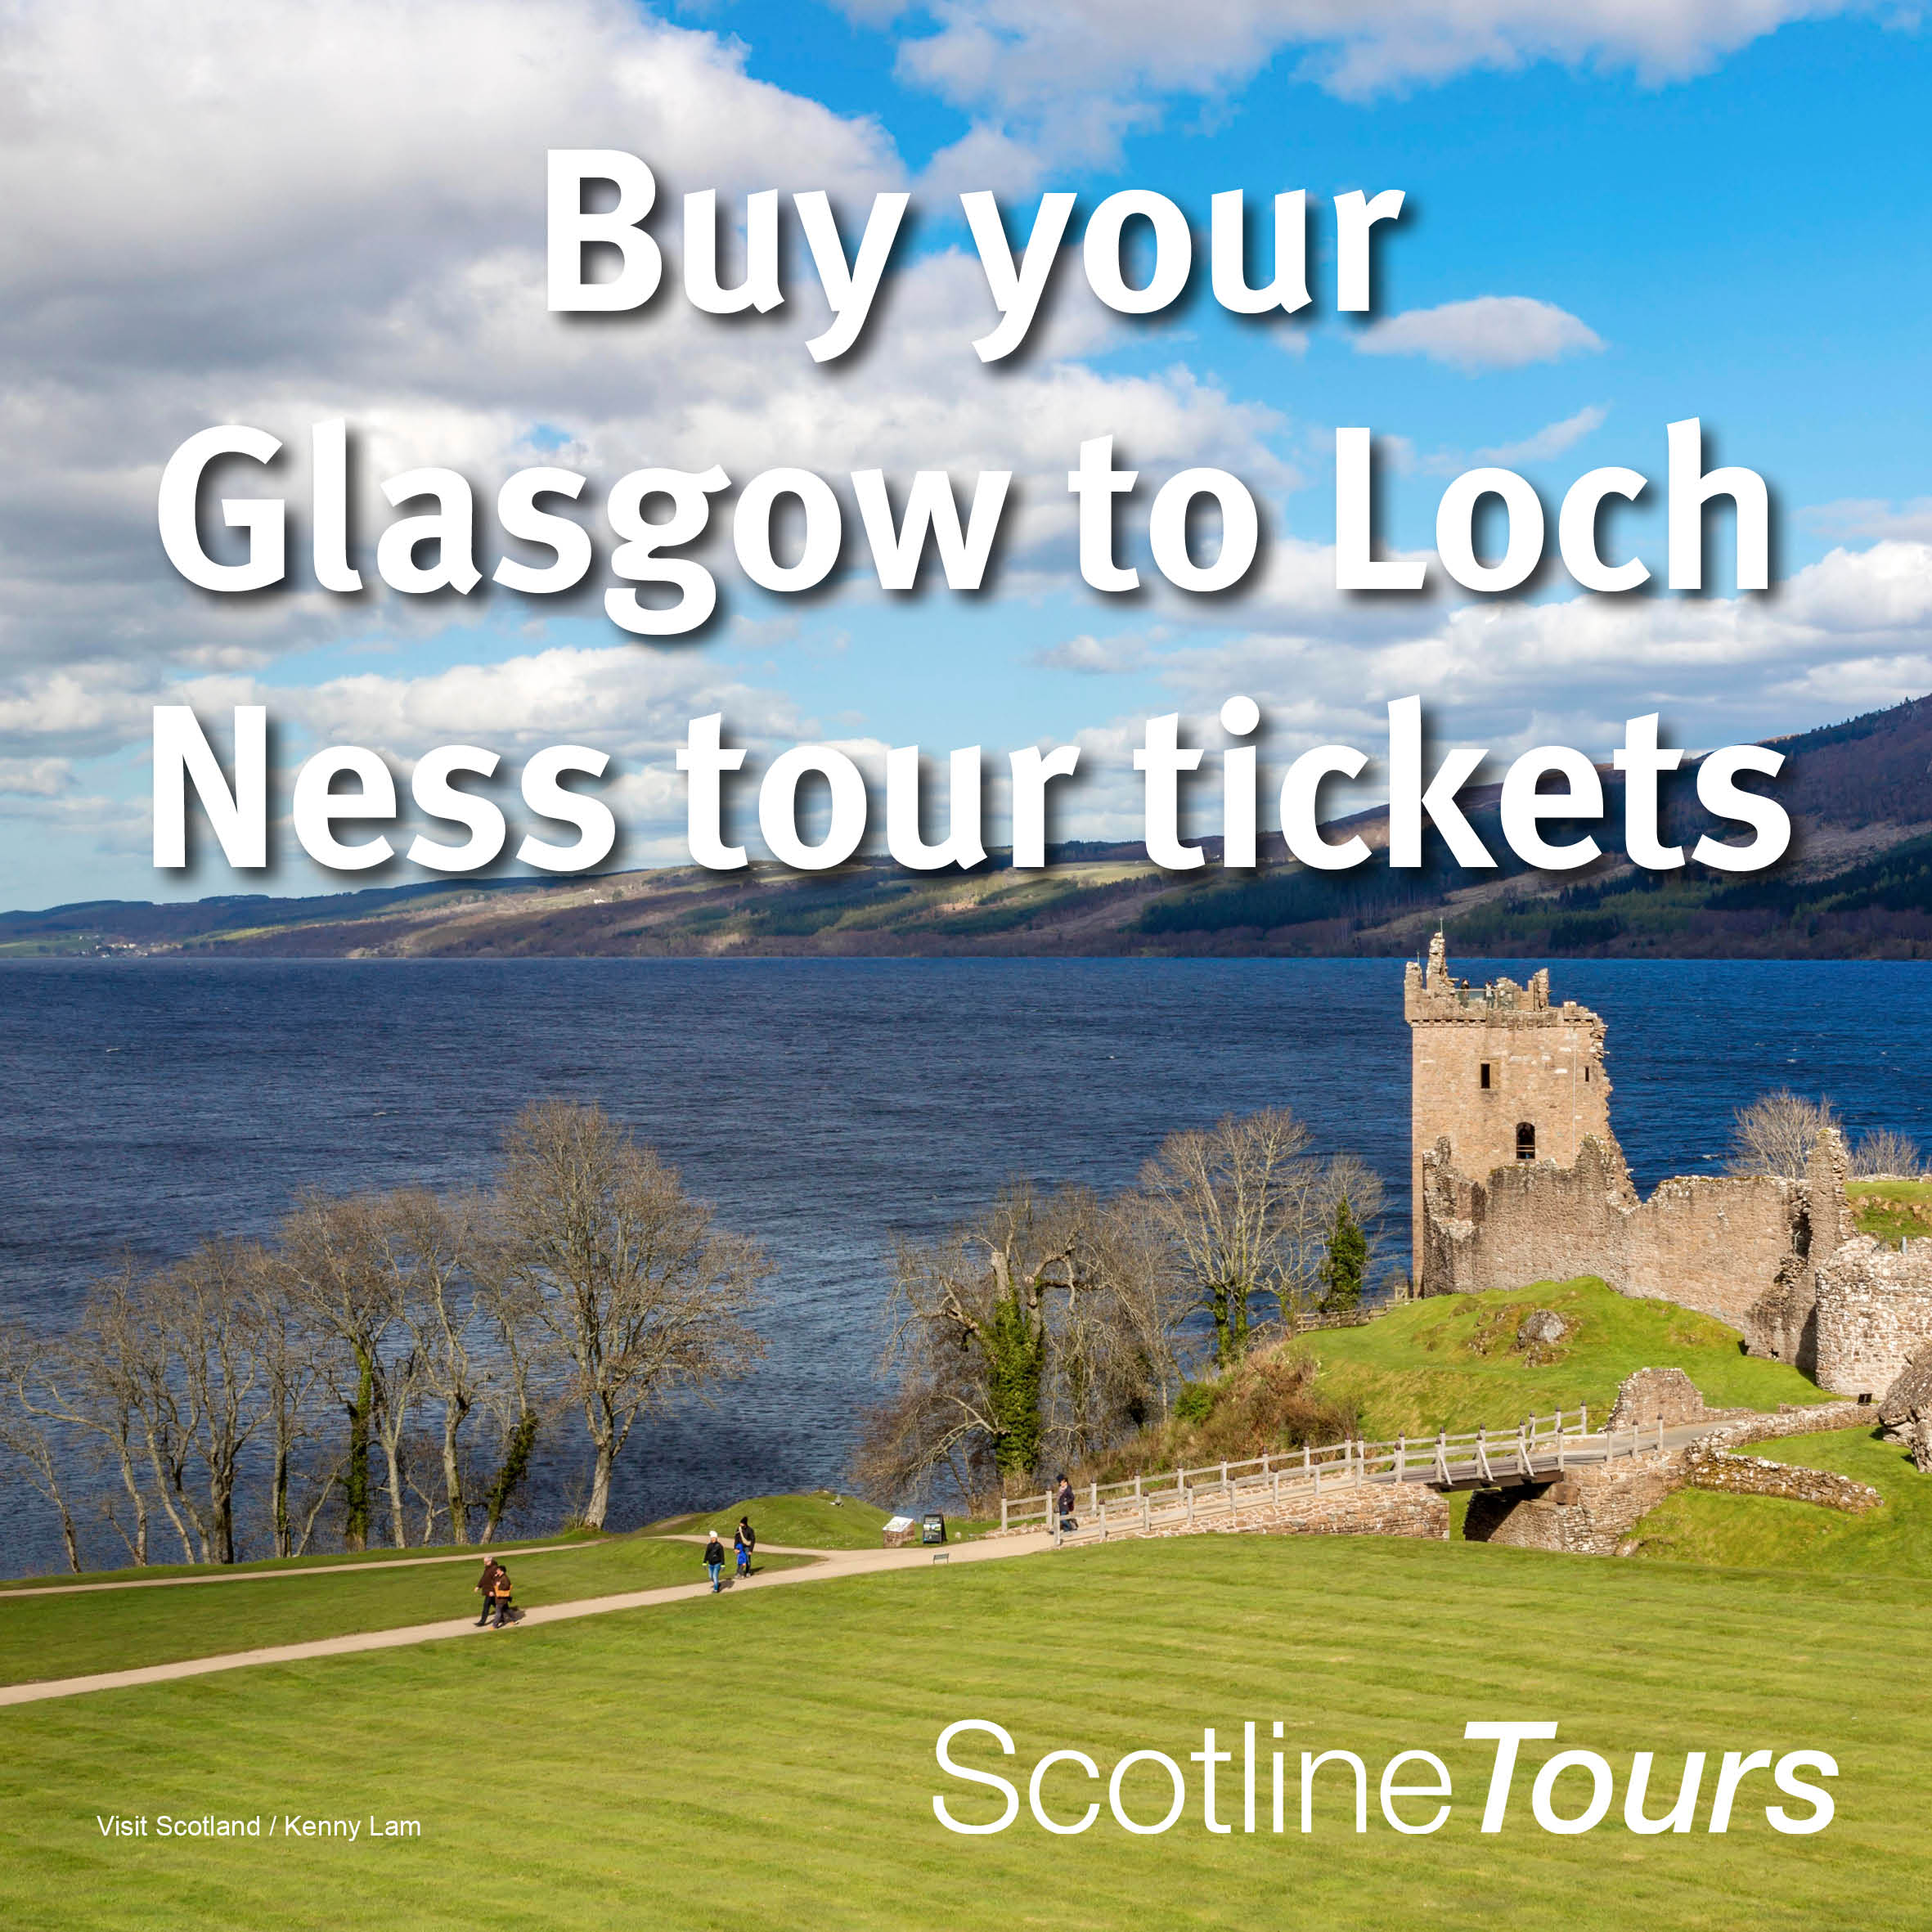 Glasgow to Loch Ness tour tickets for Mharsanta.jpg